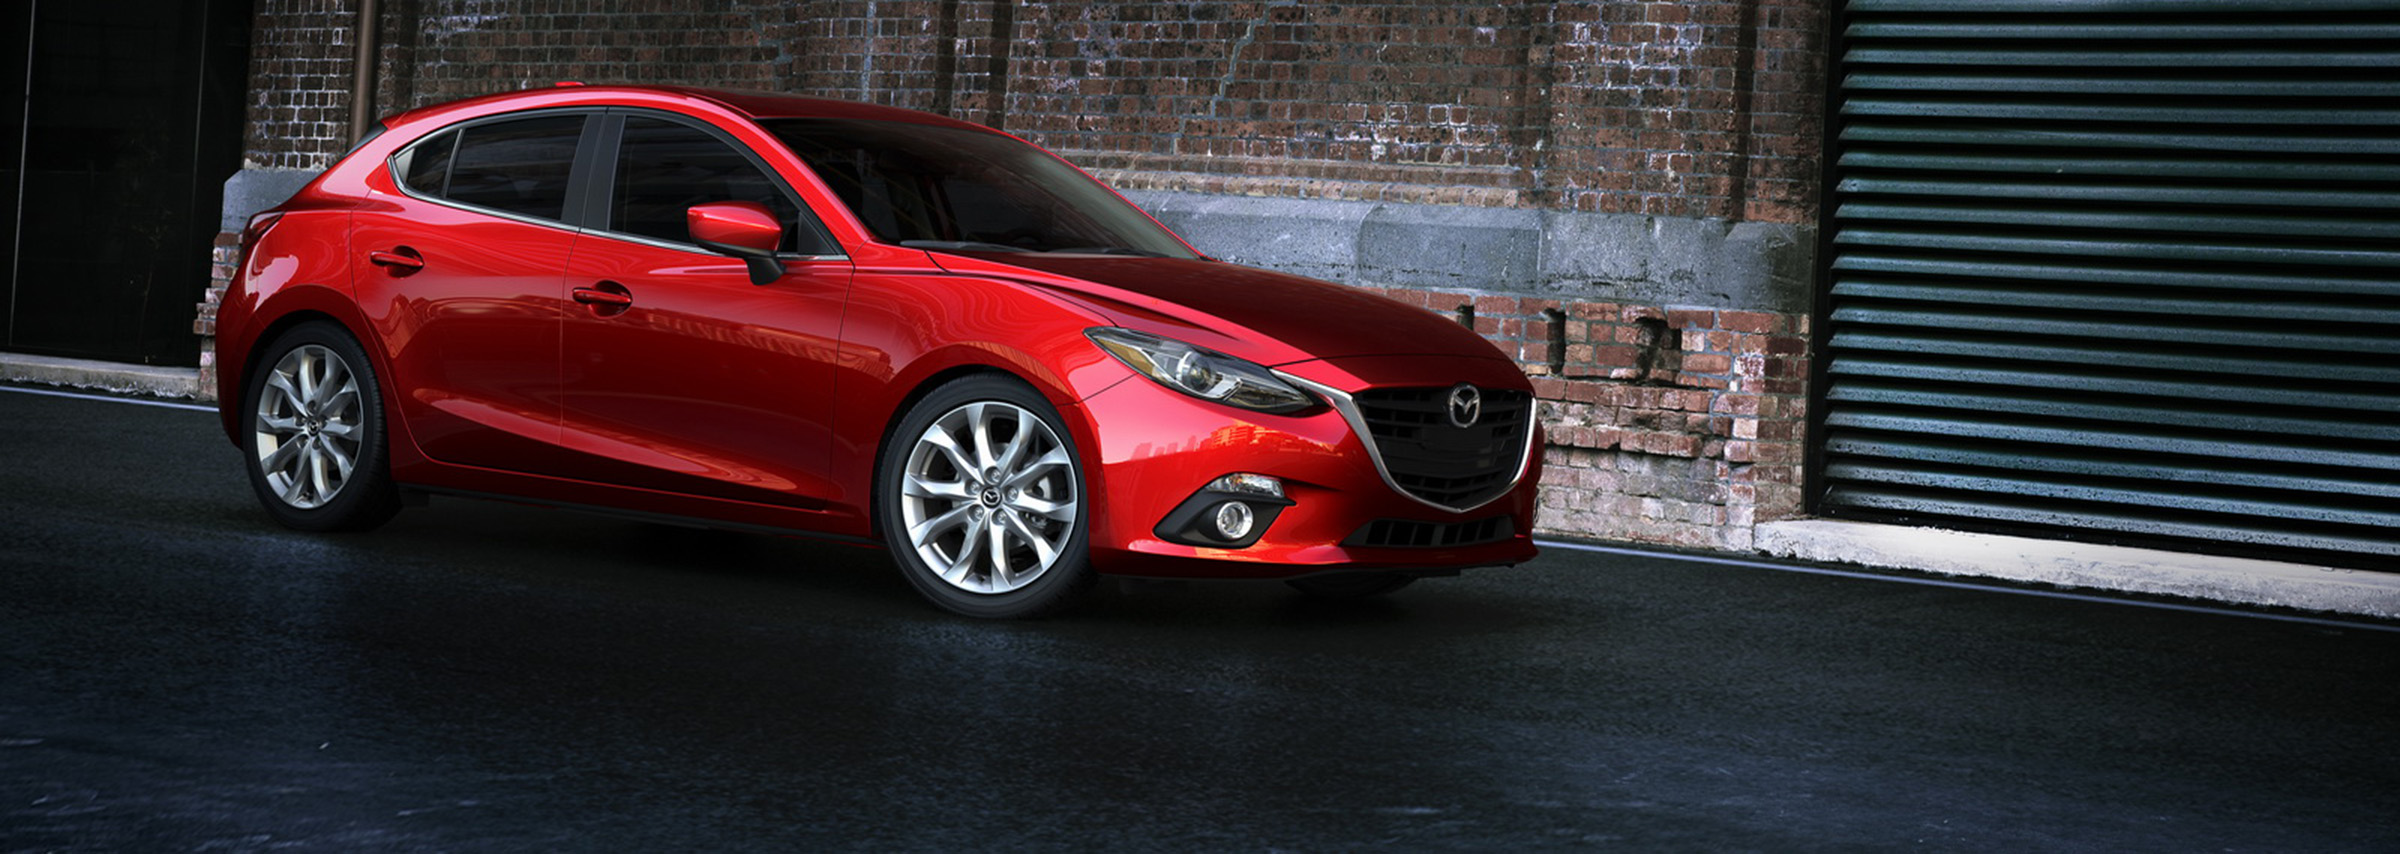 10 COOLEST NEW CARS UNDER $18,000 OF 2015 NAMED BY KBB.COM